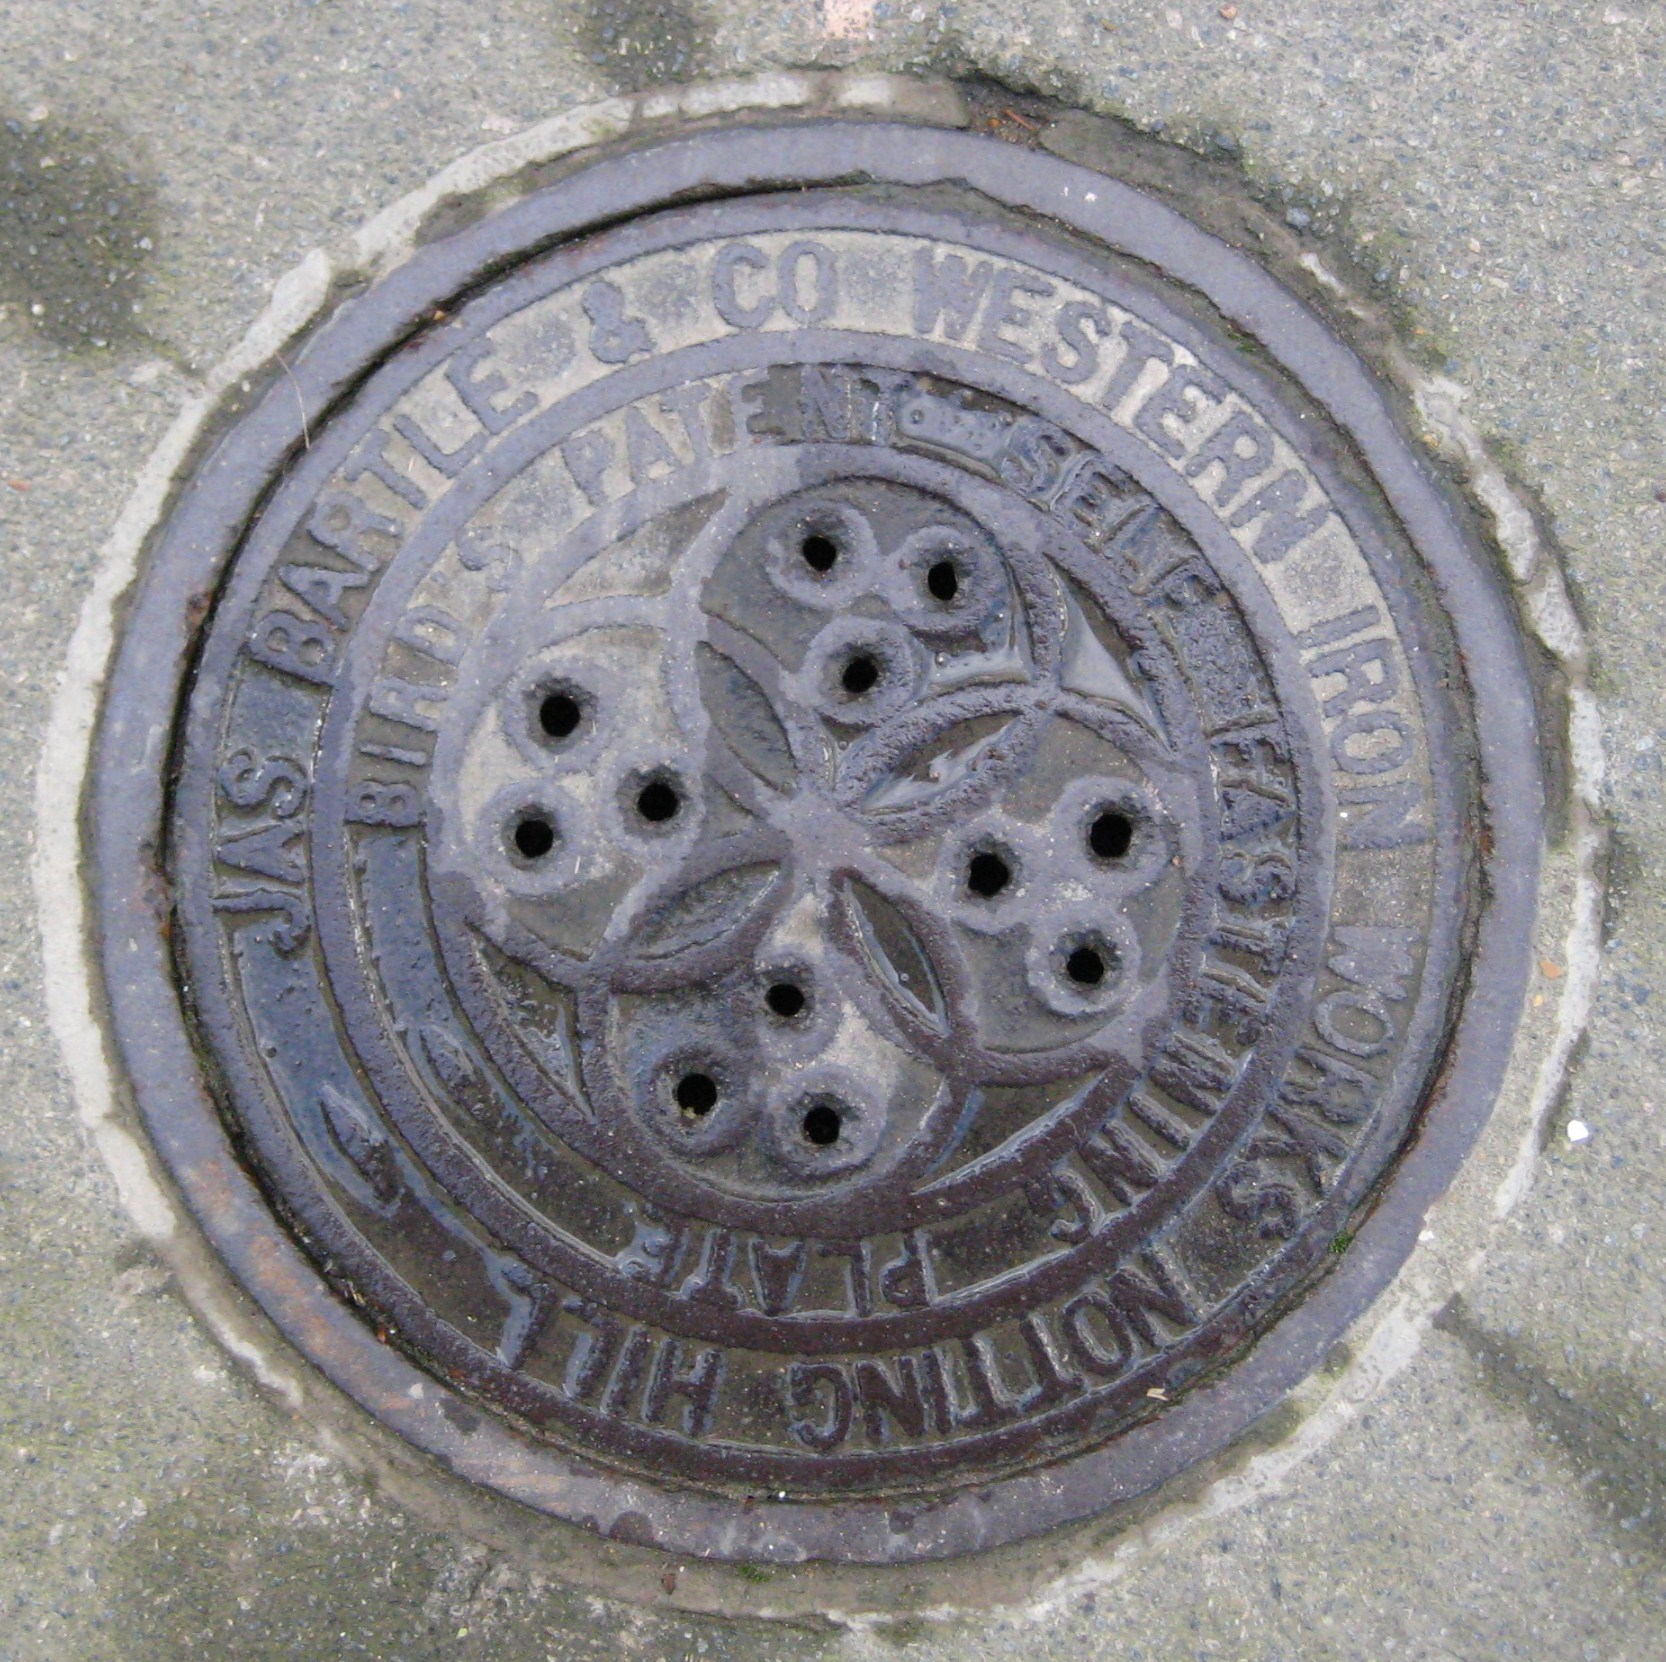 Jas. Bartle coal-hole cover, Pelham Crescent � Robert Mason 2013